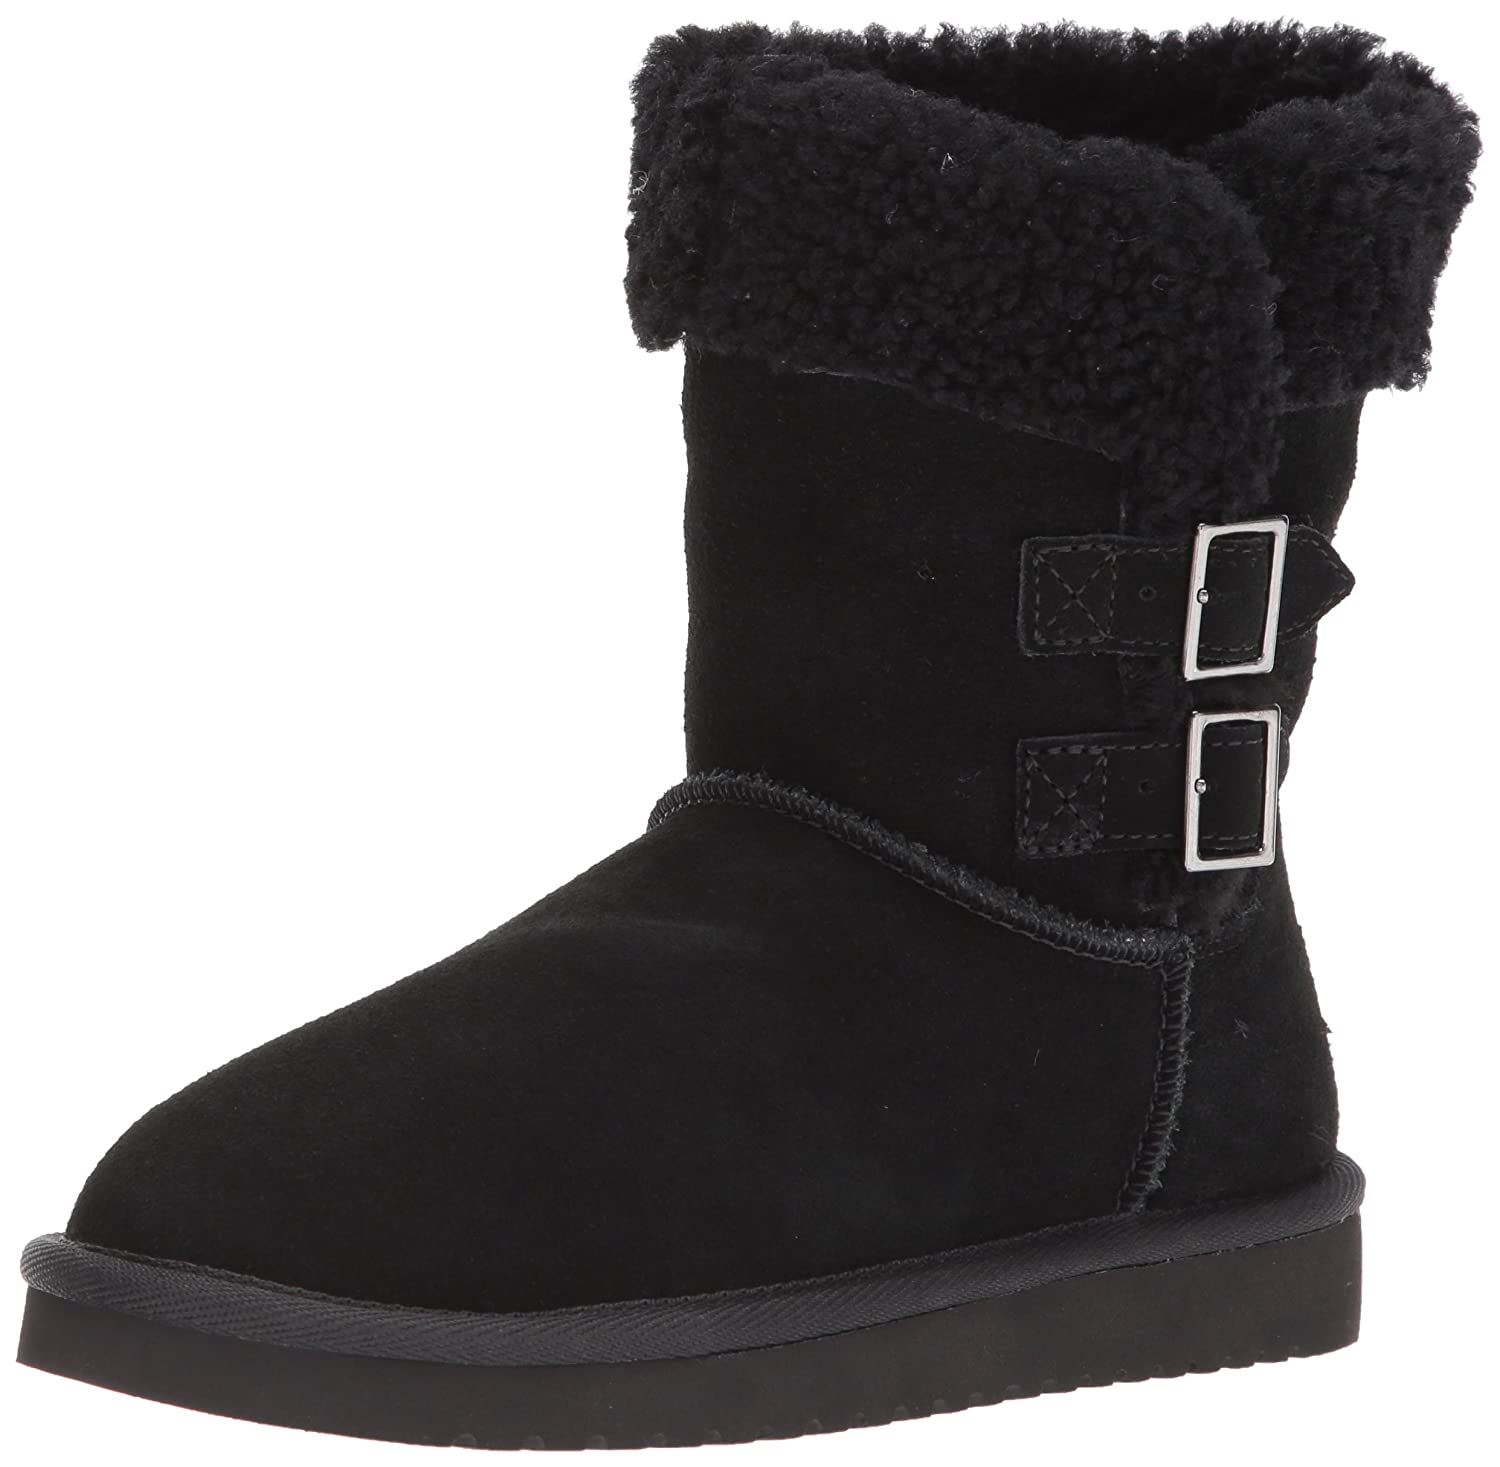 18f0a54aa43 Koolaburra by UGG Women's Sulana Short Fashion Boot